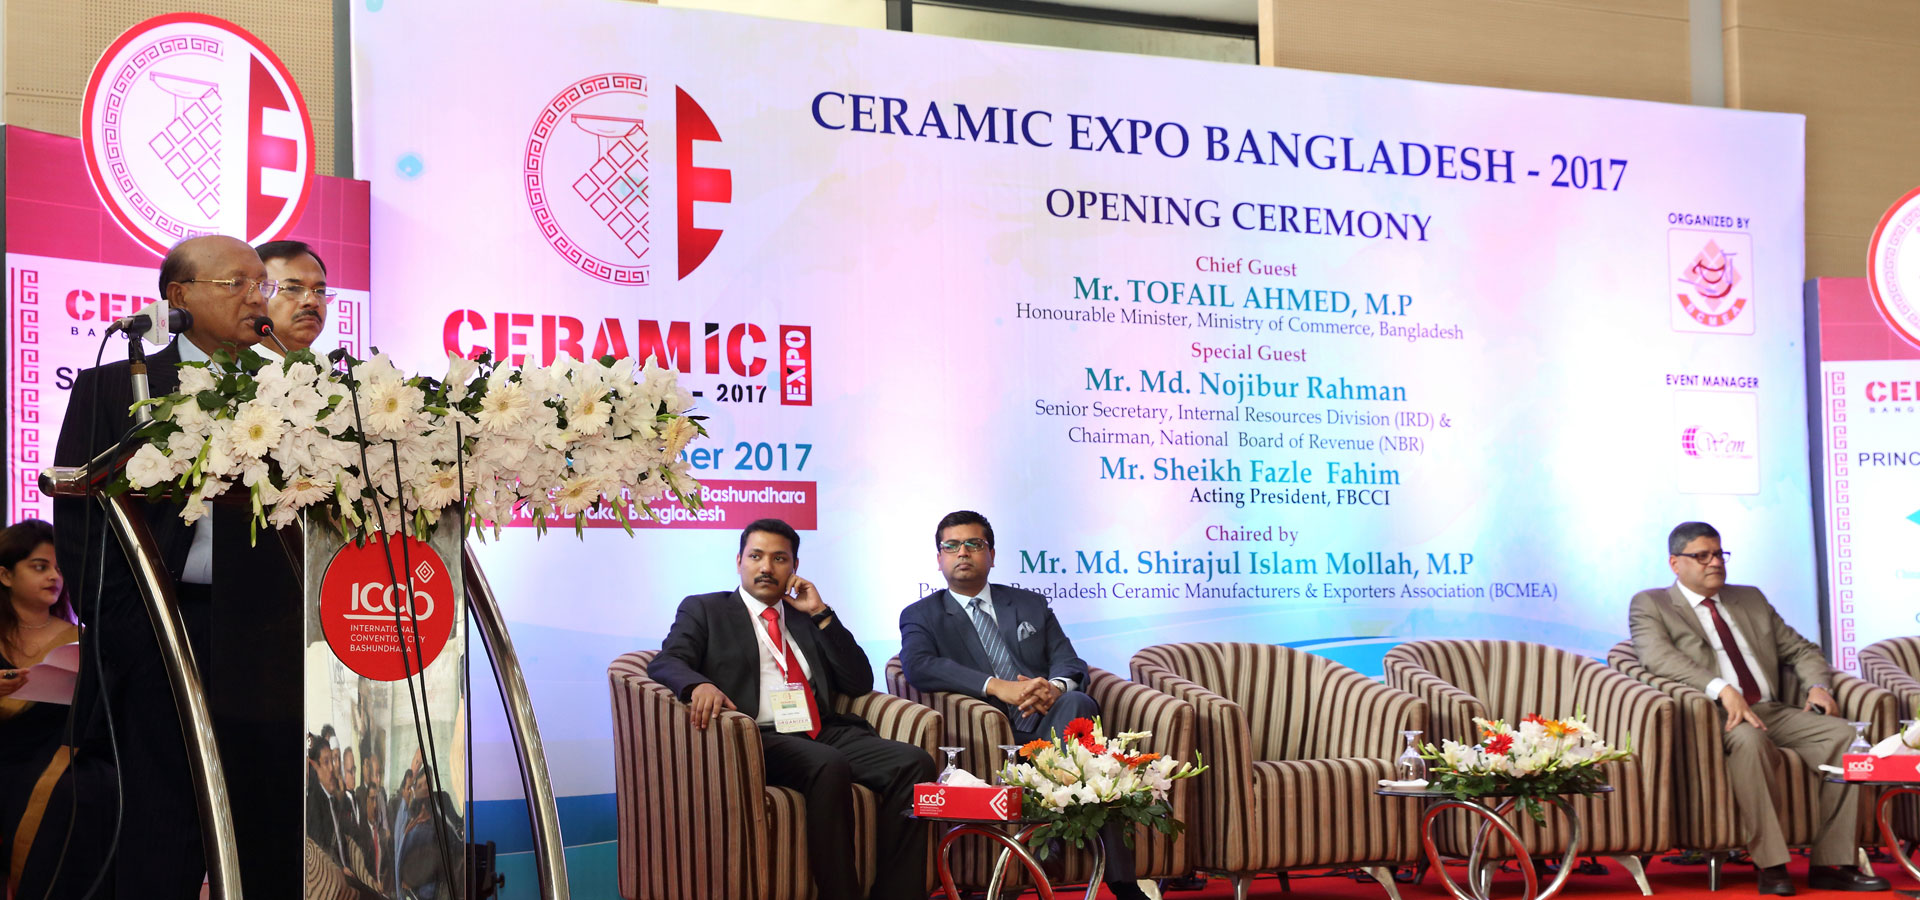 Ceramic Expo Bangladesh-2017-4